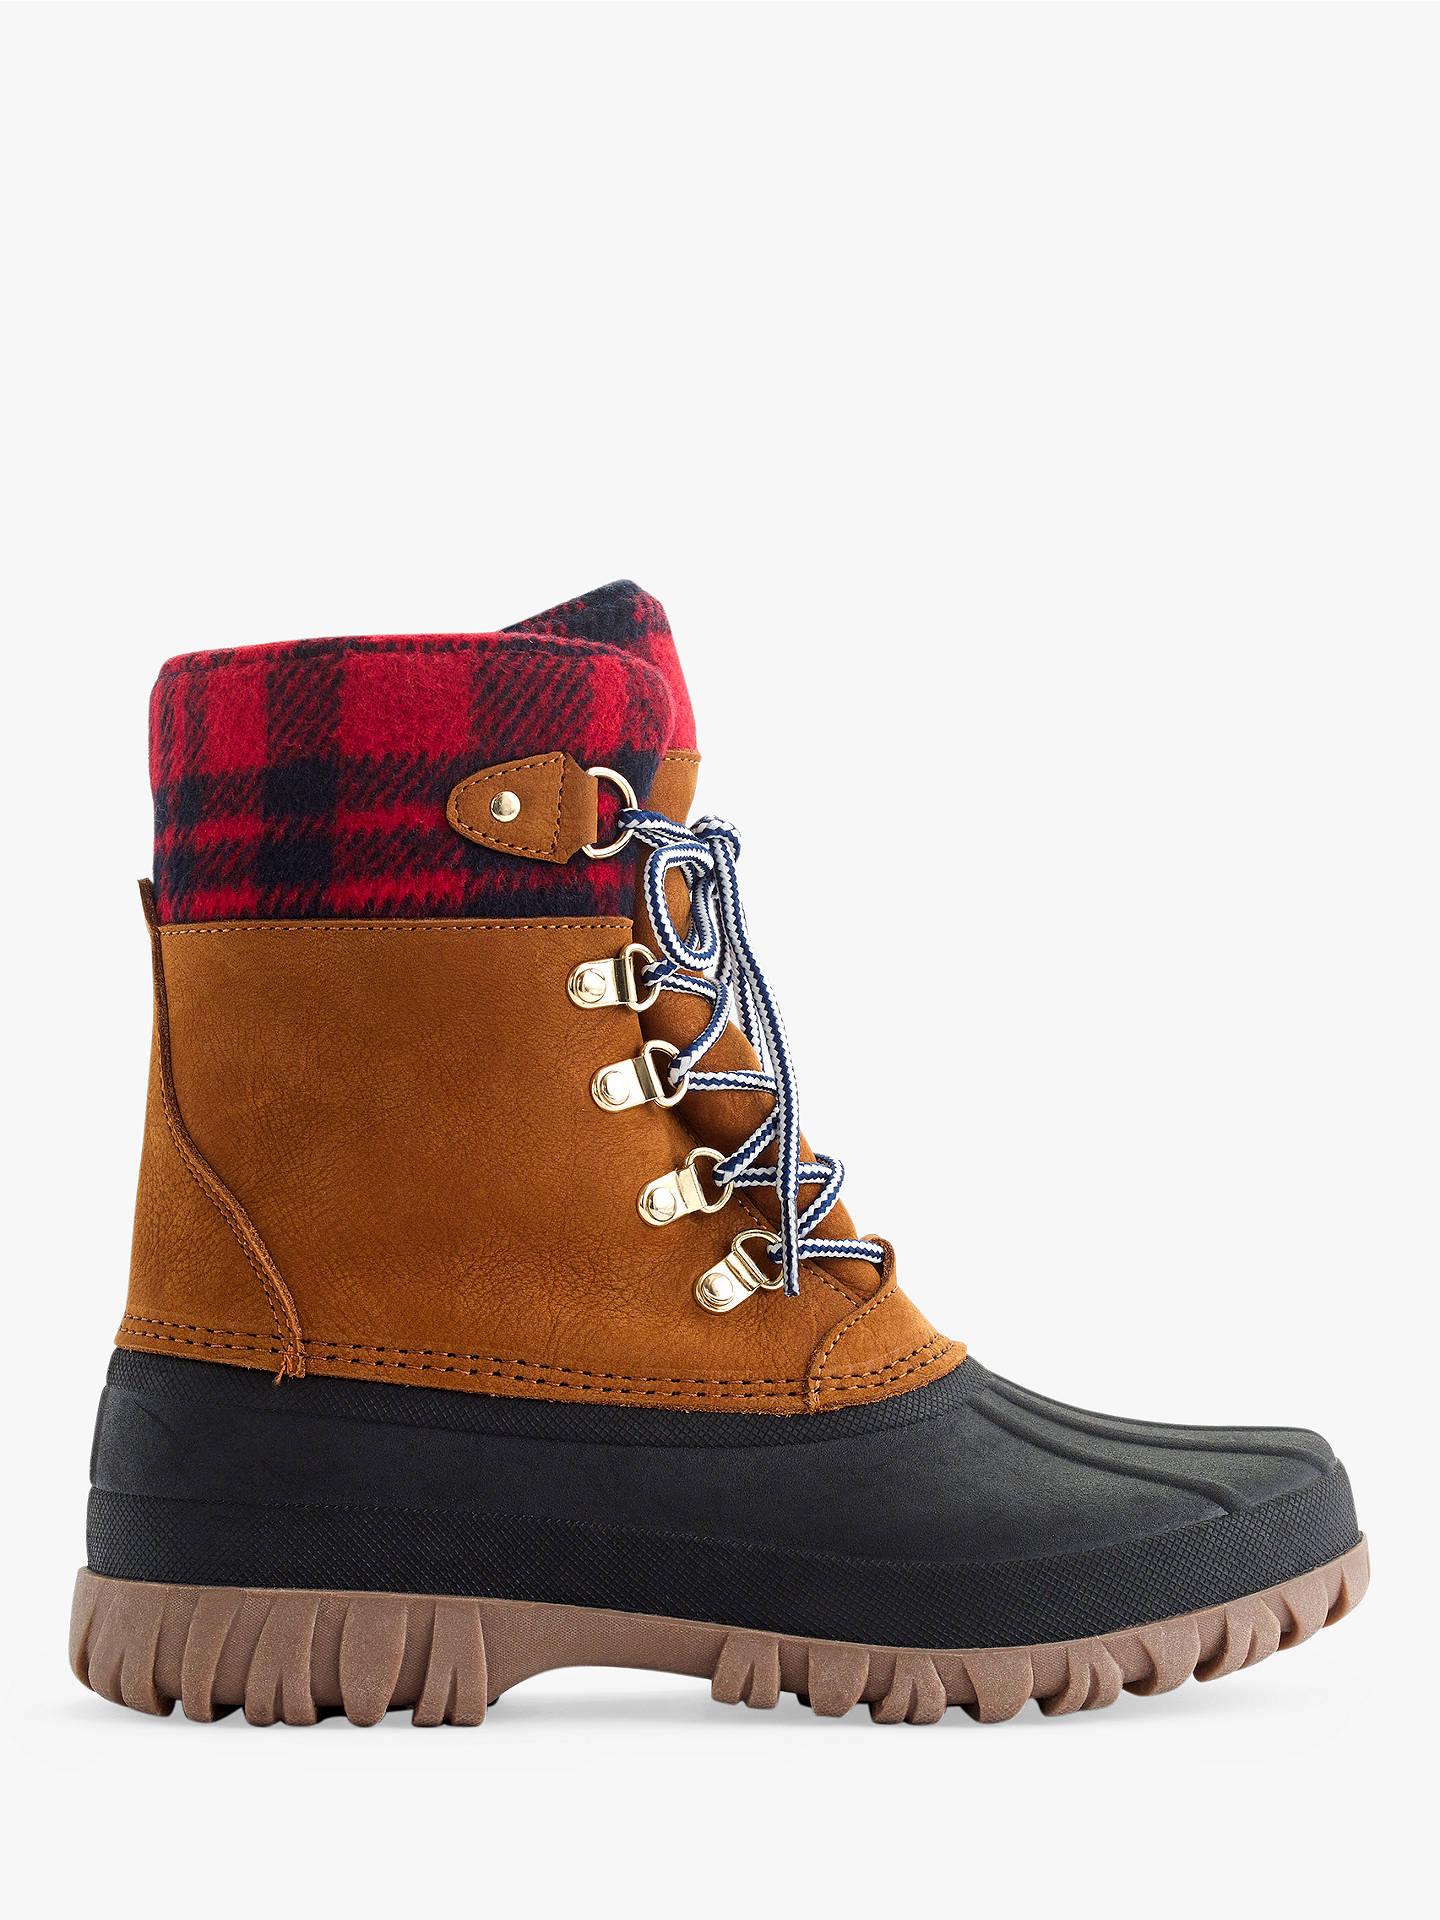 b7545ef5c02 Buy J.Crew The Perfect Winter Ankle Boots